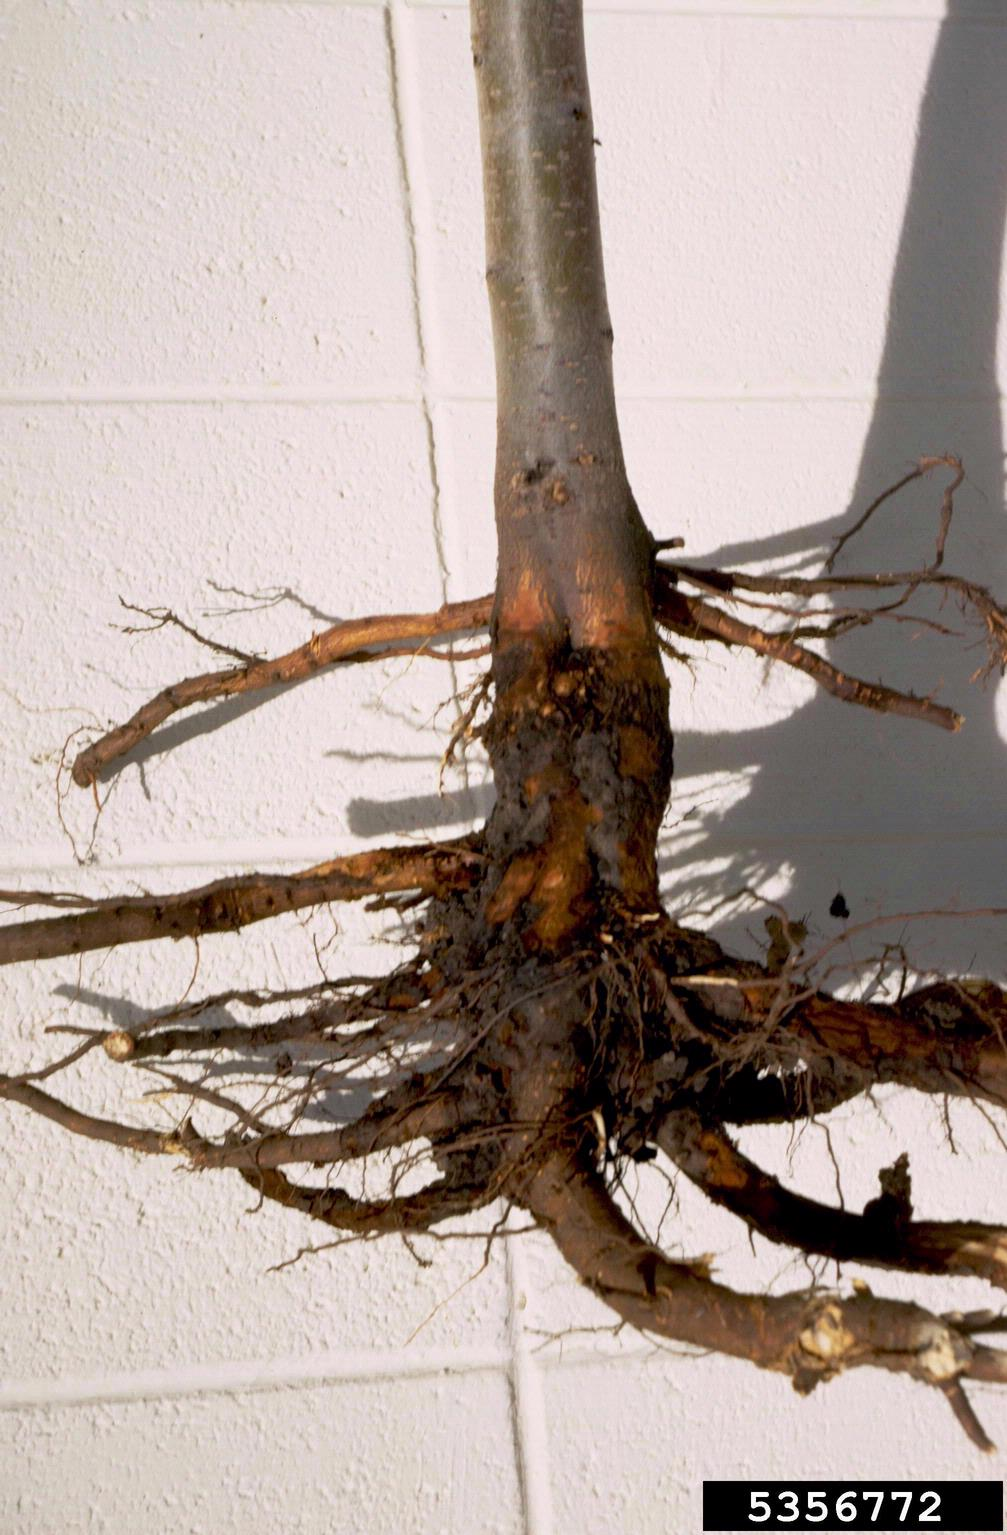 Crown Rot Disease: What Is Crown Rot And How To Treat It